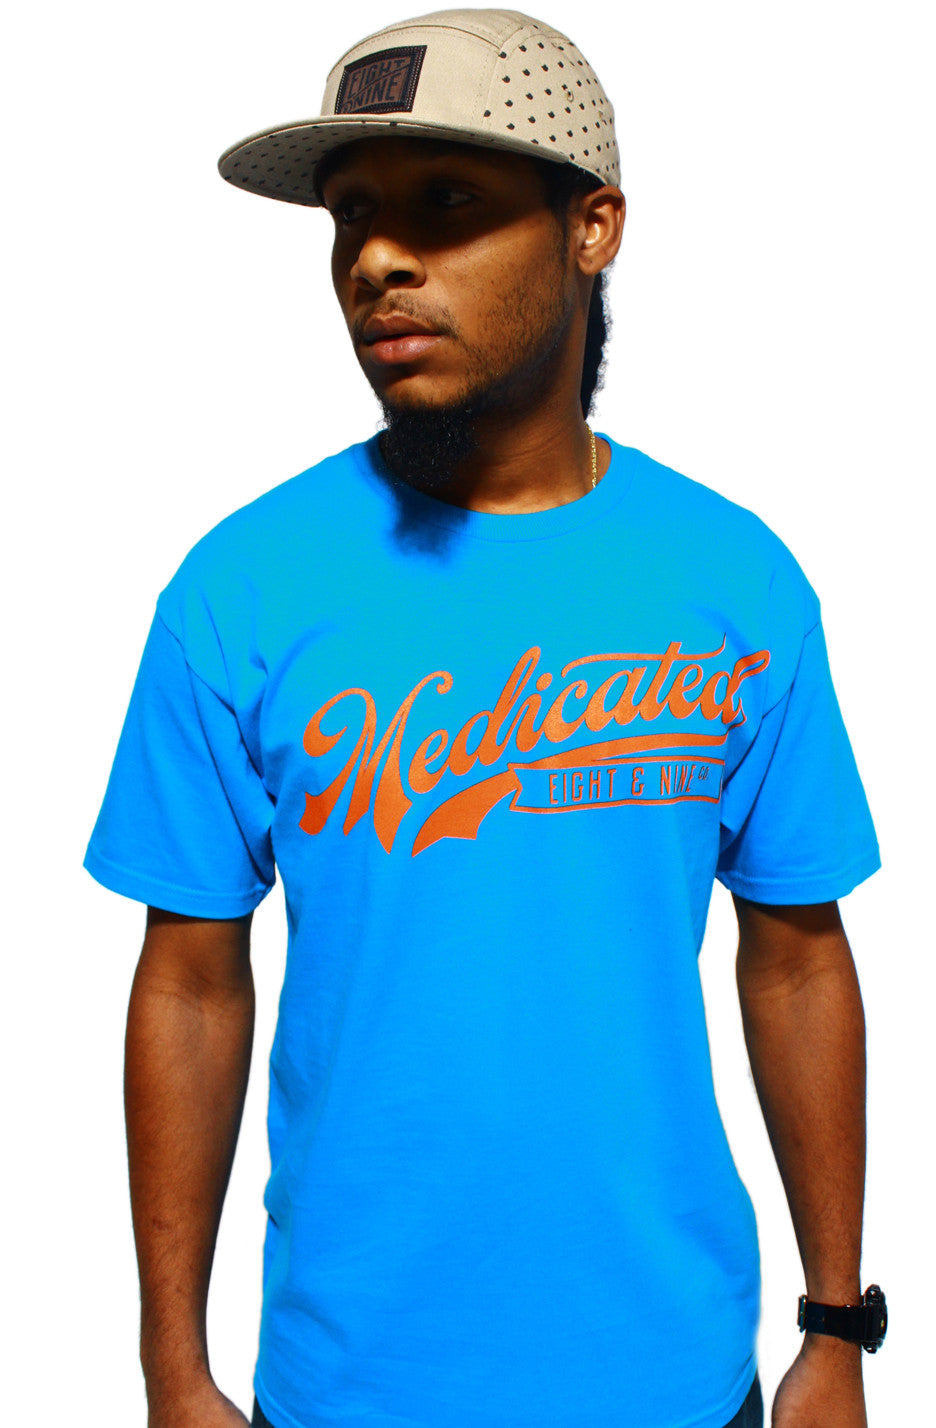 Team Medicated Dolphins T Shirt - 1